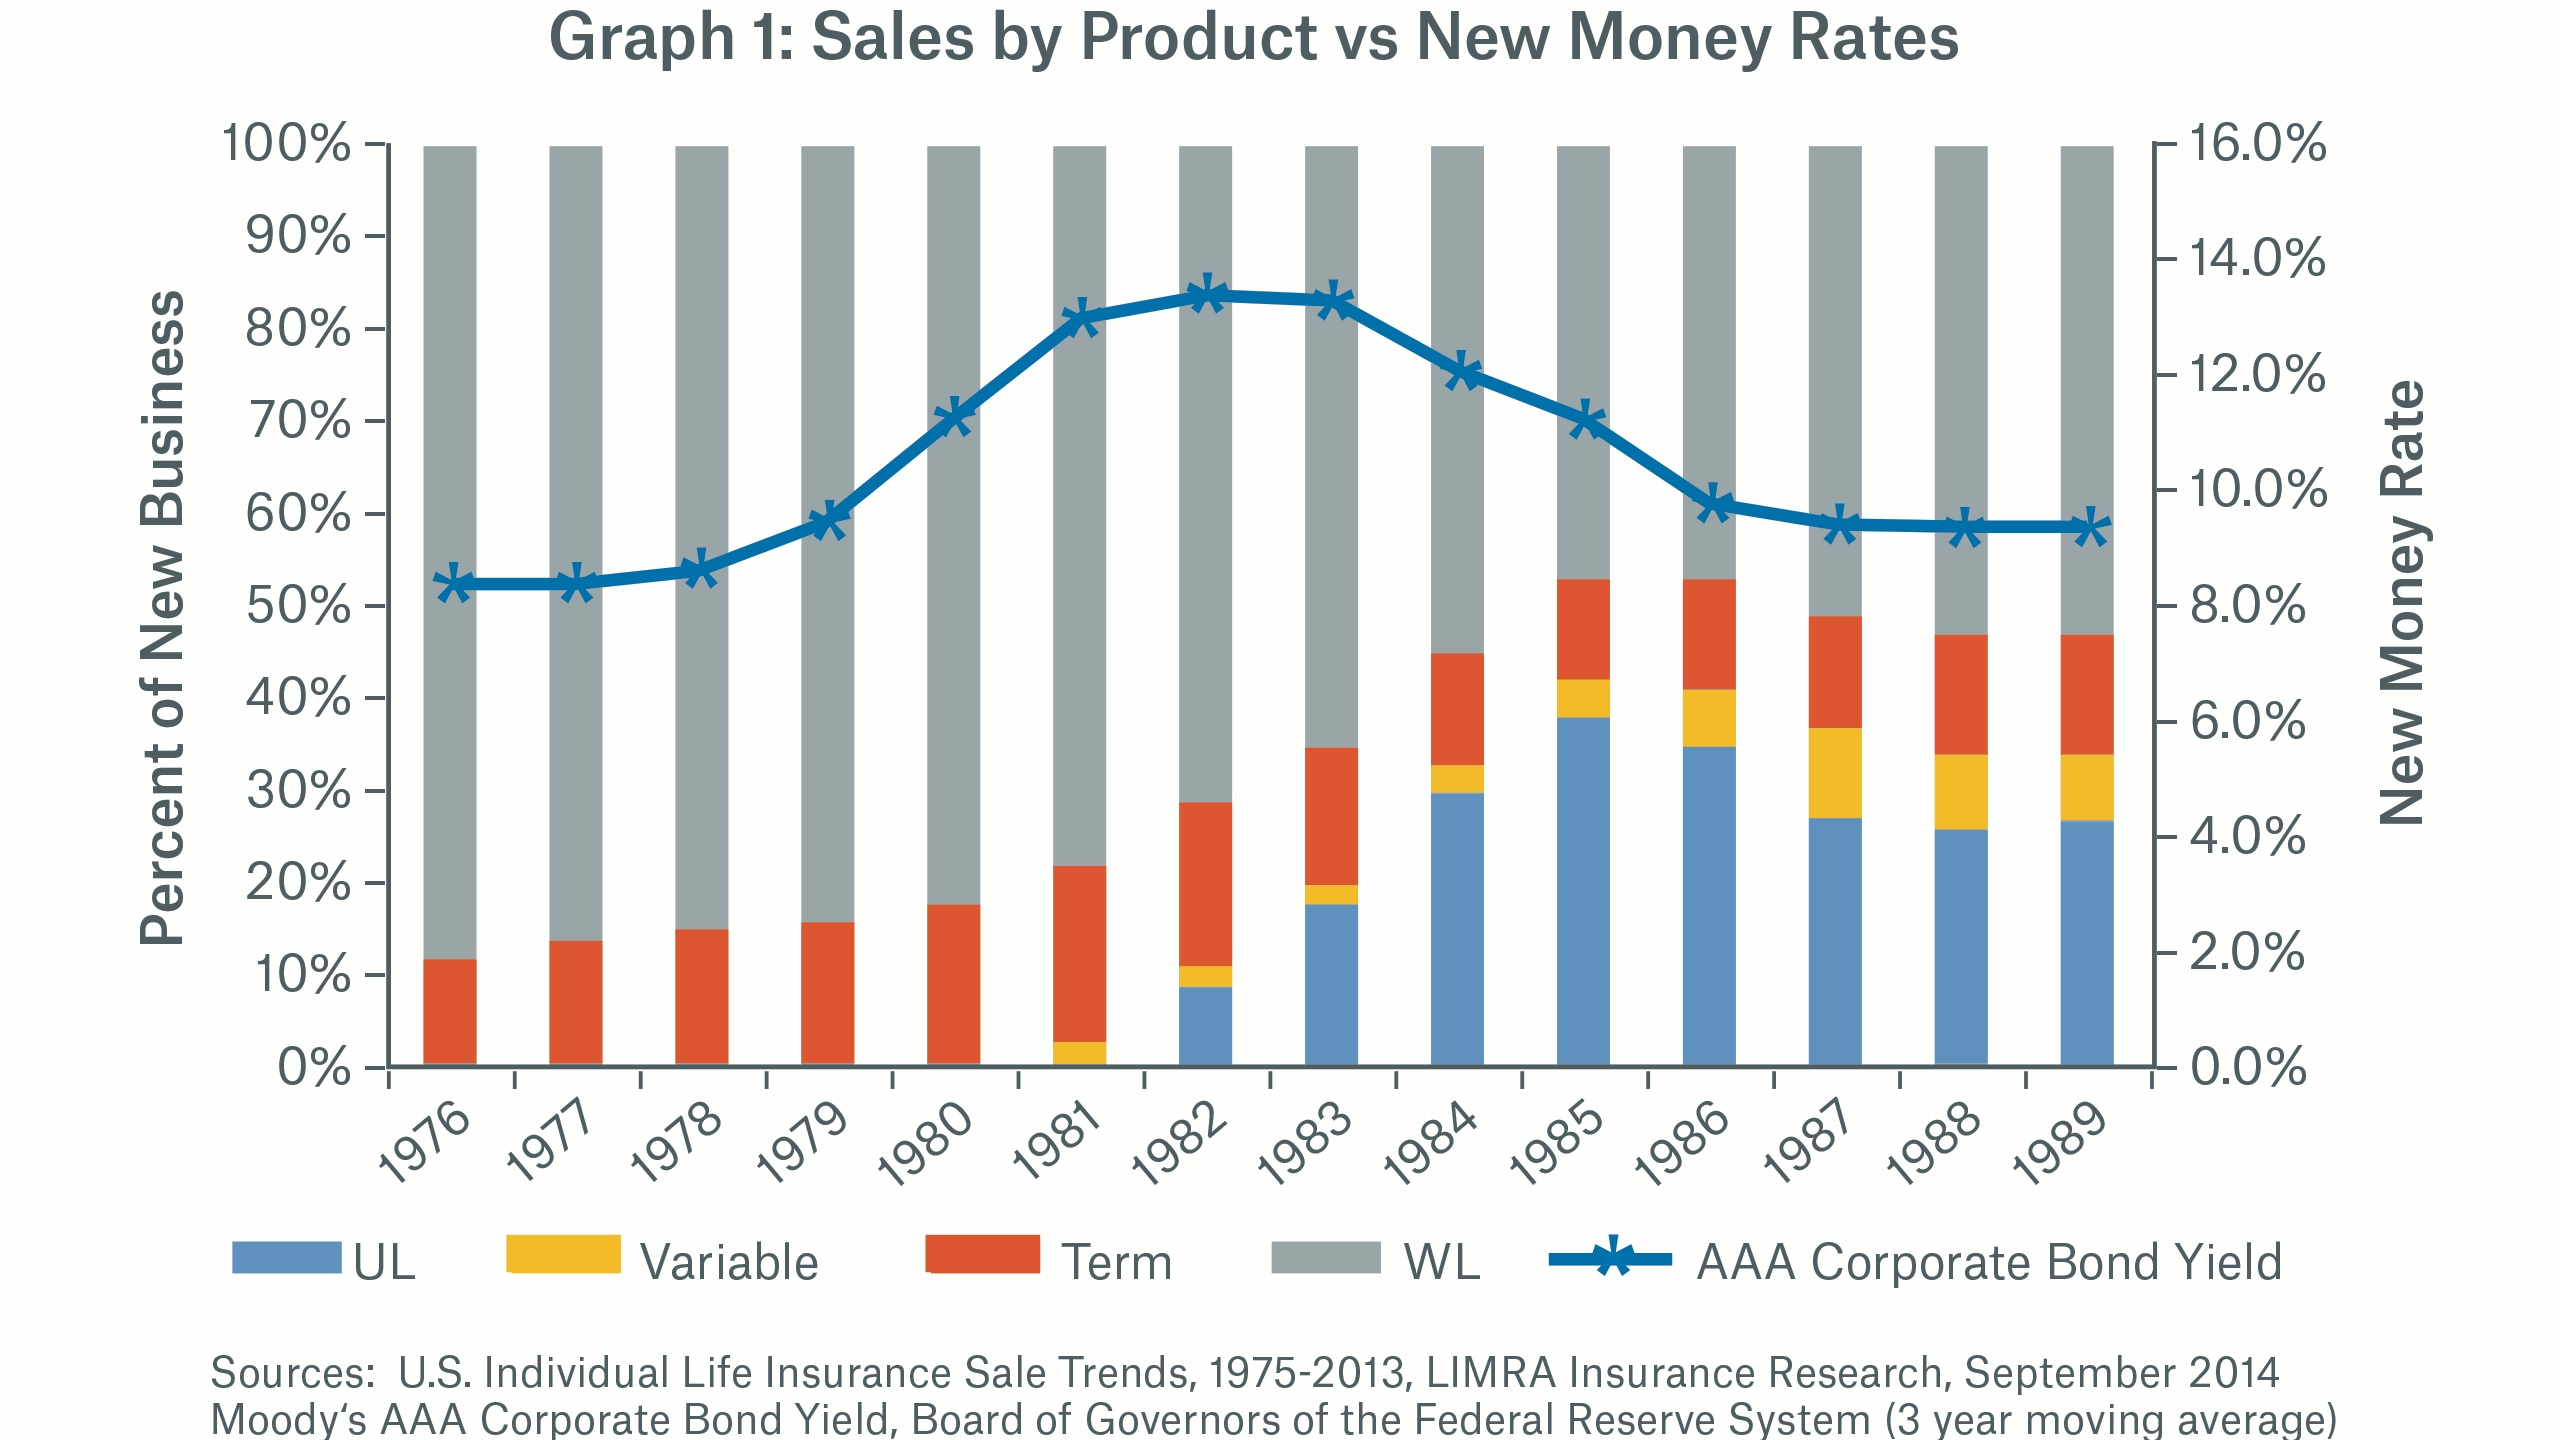 Graph 1: Sales by Product vs New Money Rates